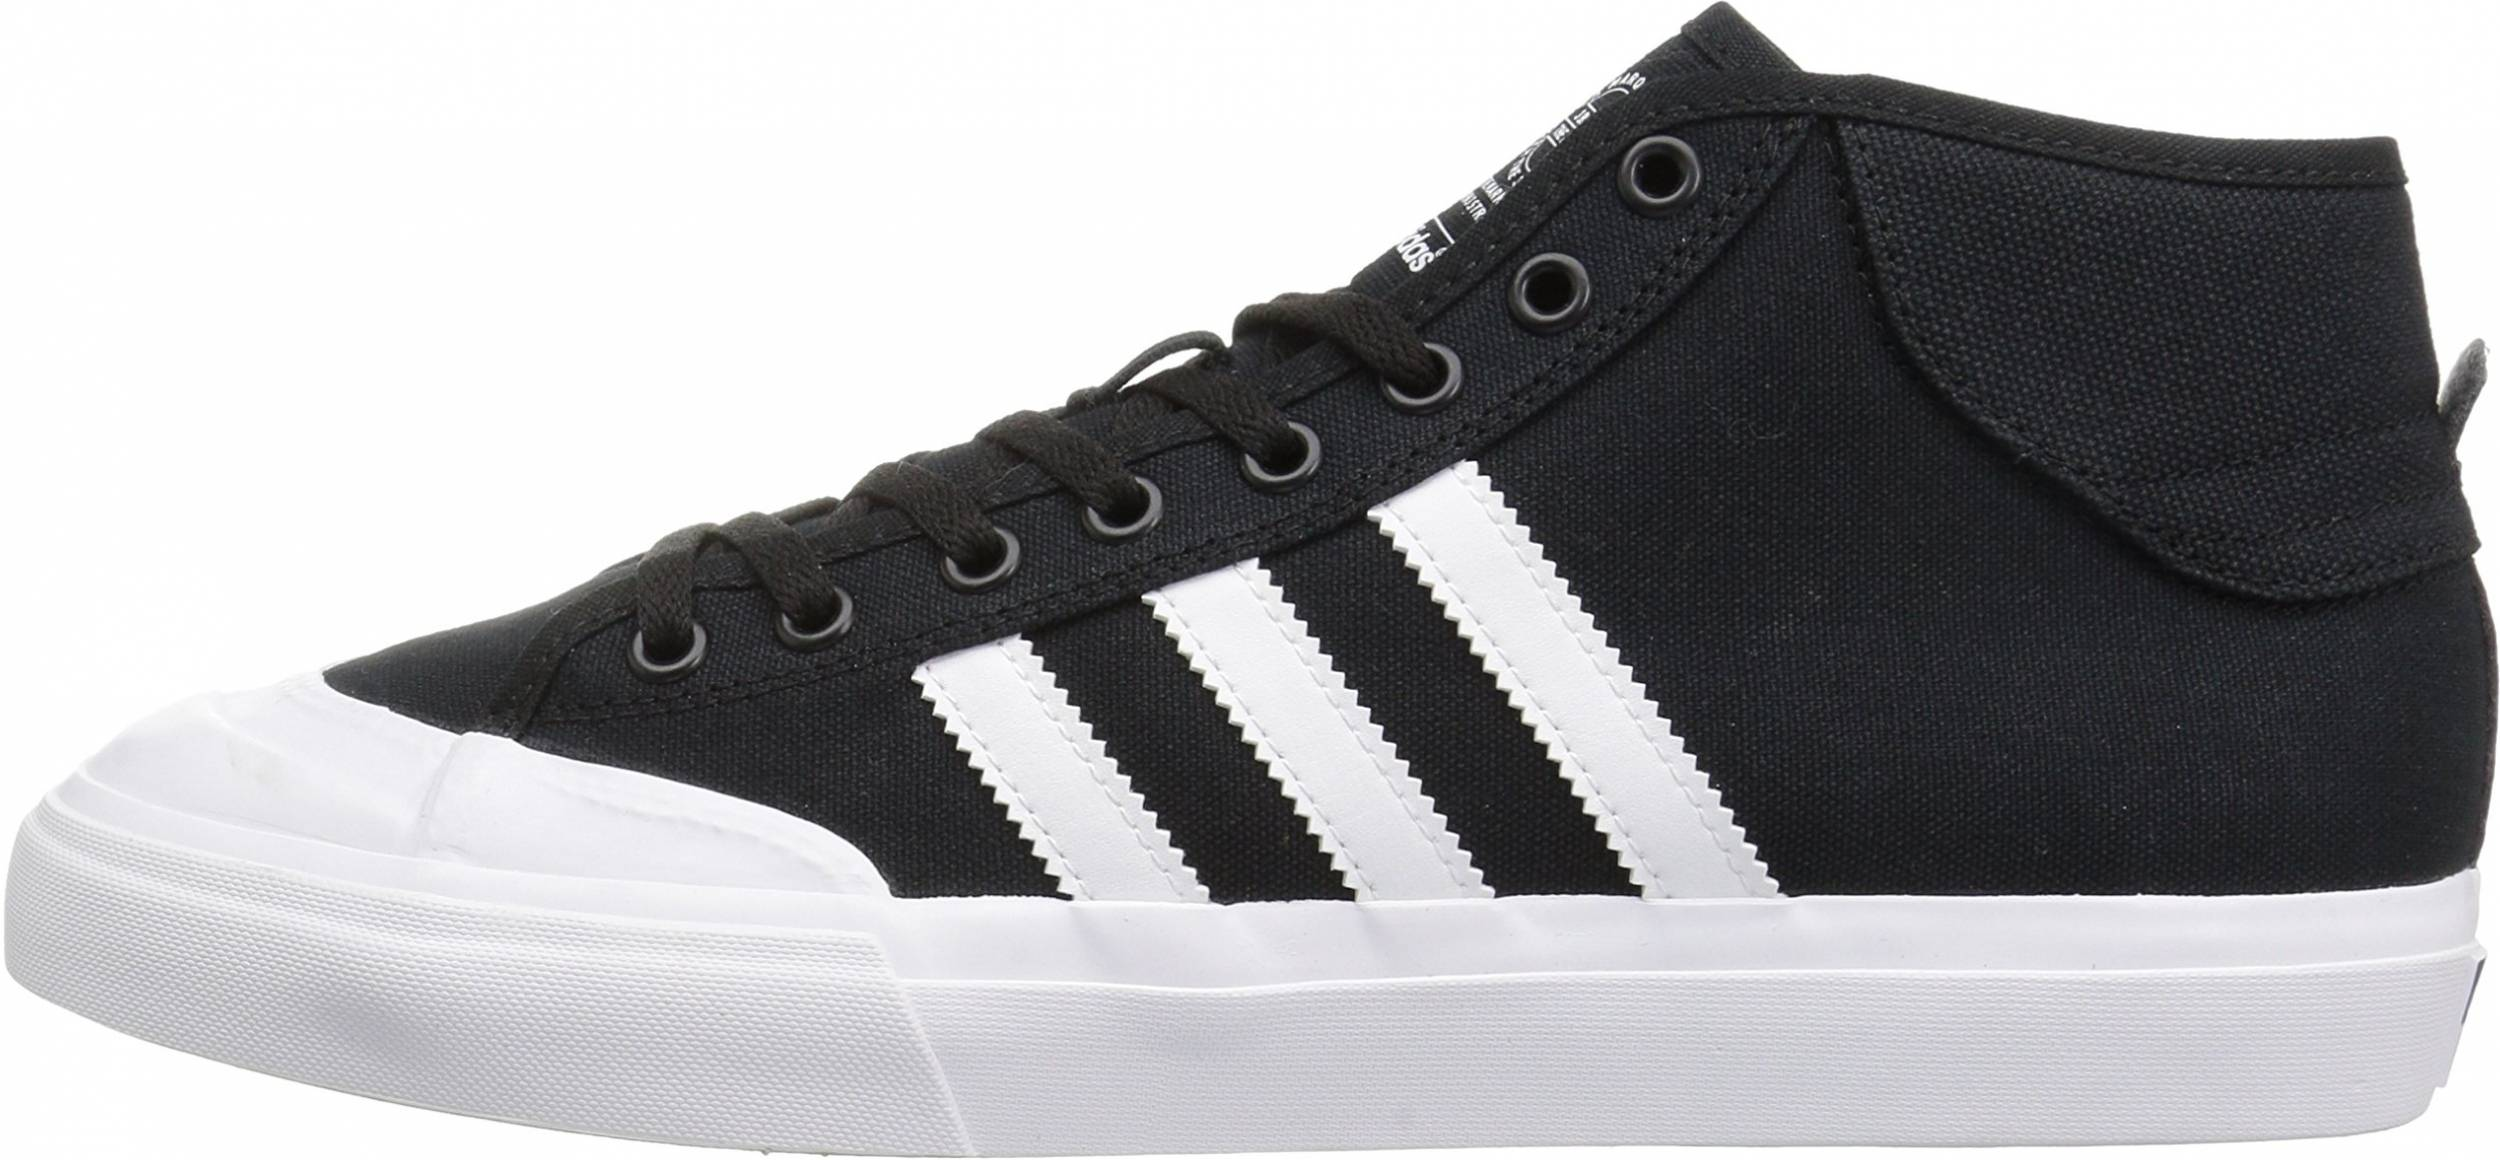 $90 + Review of Adidas Matchcourt Mid